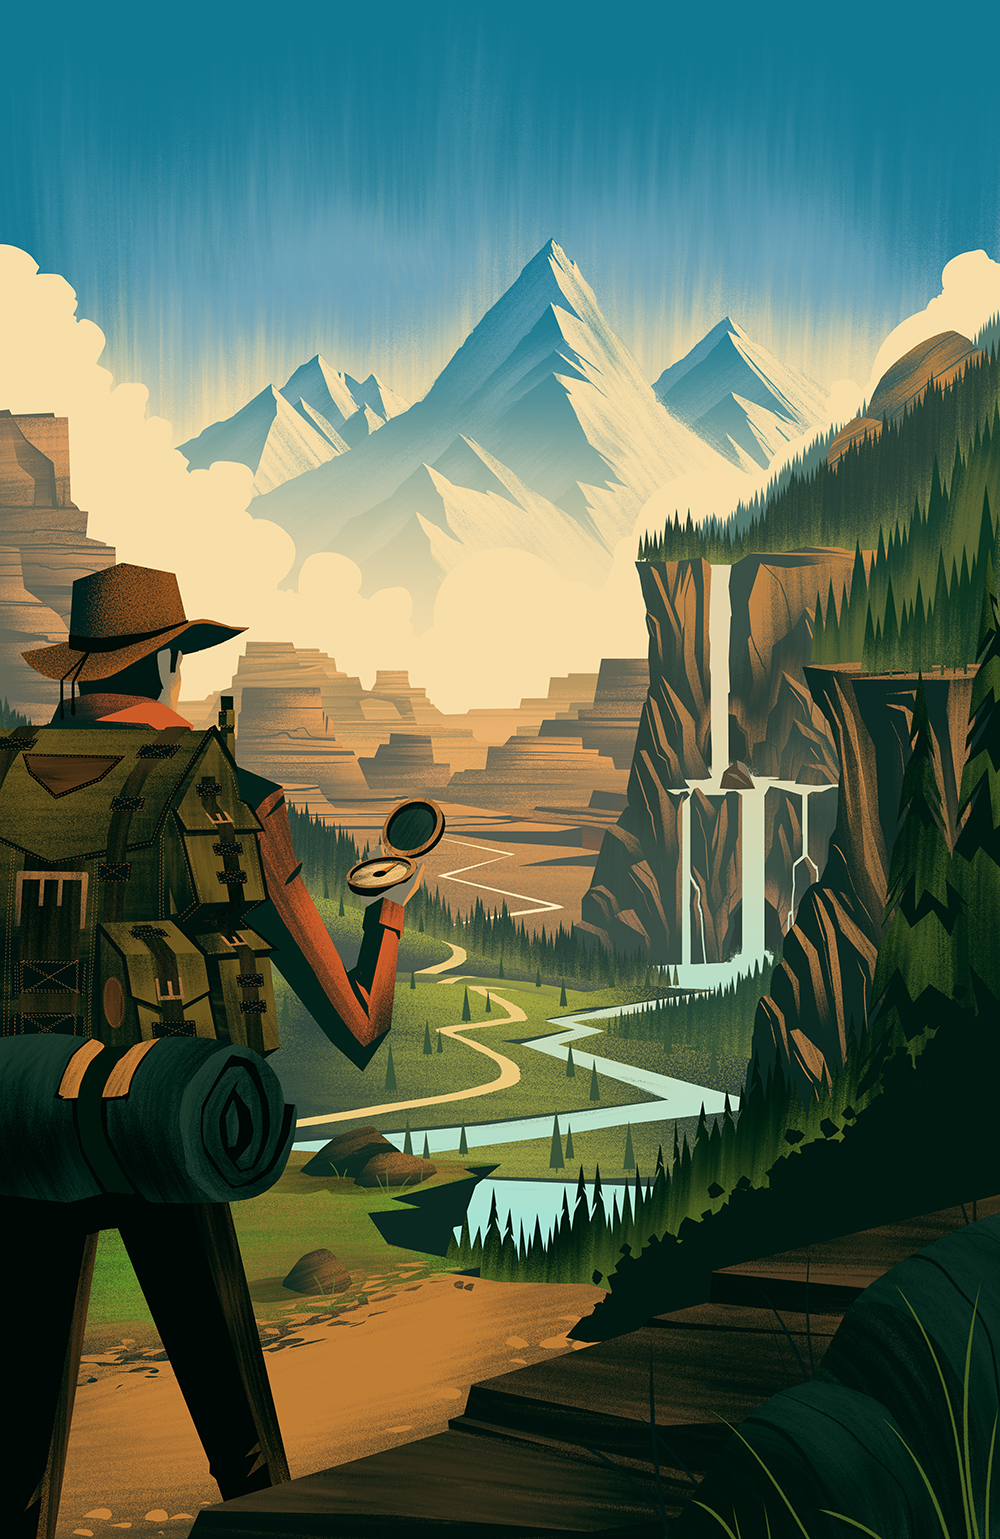 outdoors mountains hiking Hiker camping Waterfalls Forests ocs Orlin Culture Shop vintage Retro